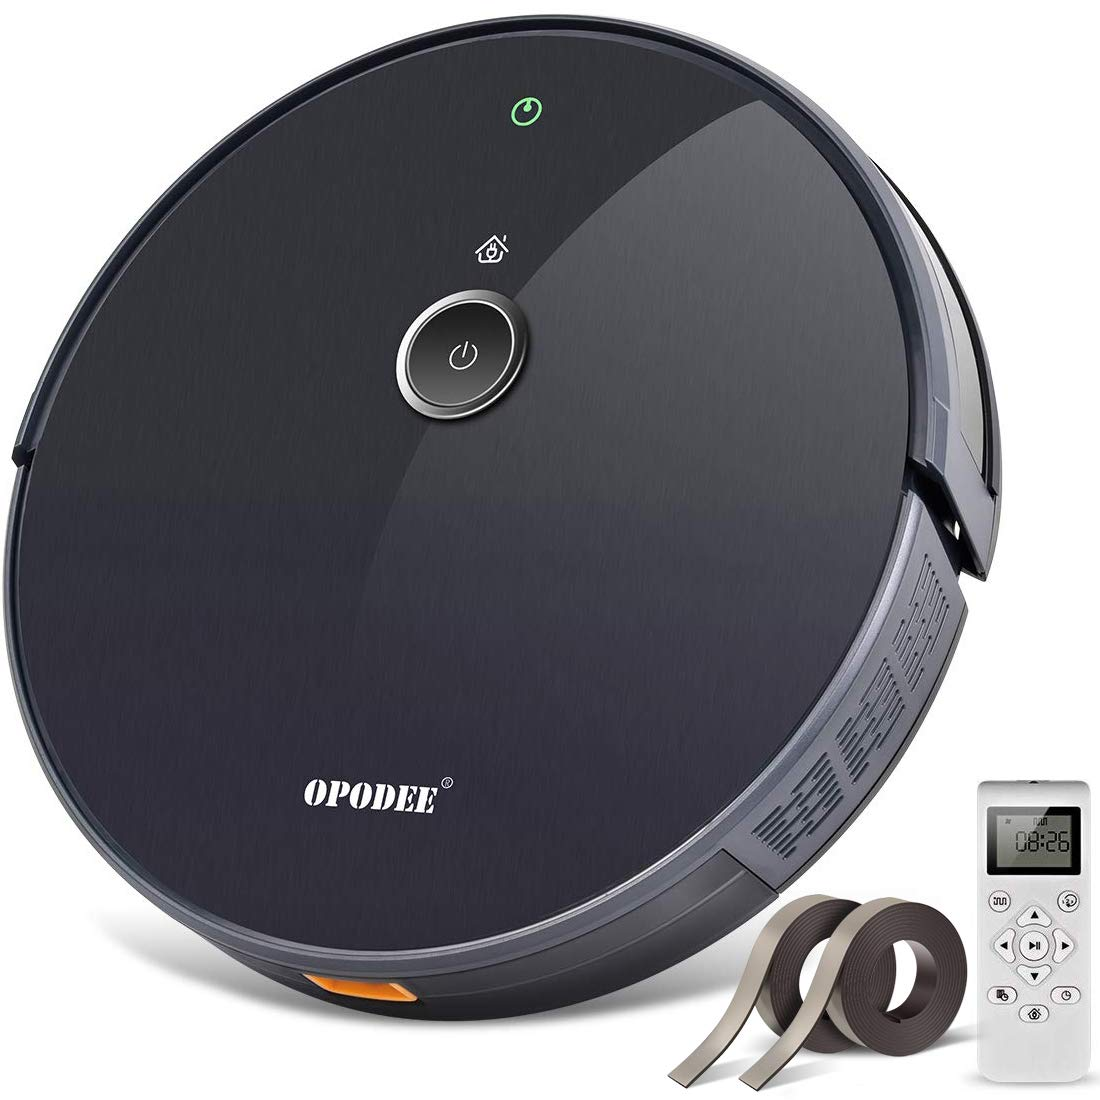 OPODEE Robotic Vacuum Cleaner, with 1800Pa Ultra Strong Suction, Pet Hair Cleaning, Smart Navigation, 360° Sensor Protection, Self-Charging, Super Quiet, Ideal for Hard Floor, Mid-Pile Soft Carpets by OPODEE